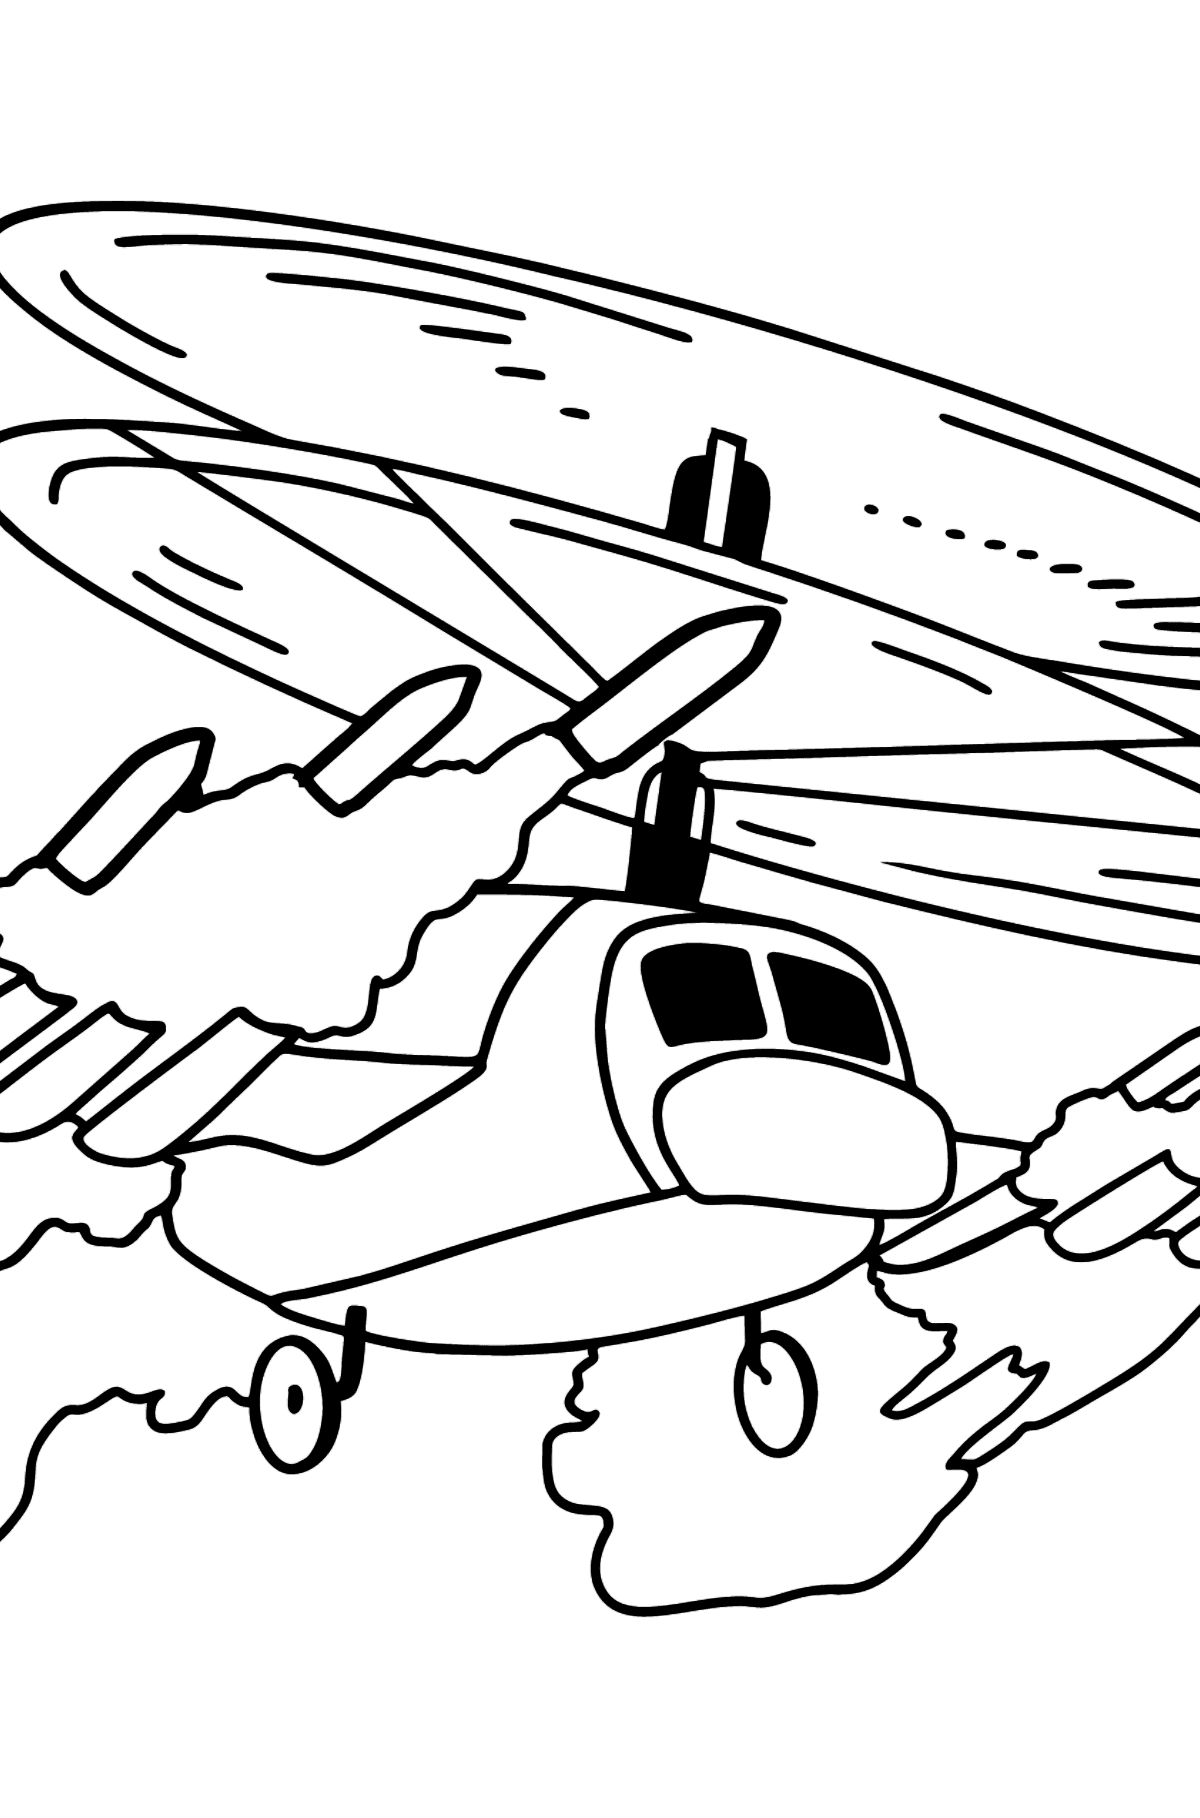 Coloring Page - A Military Helicopter - Coloring Pages for Kids